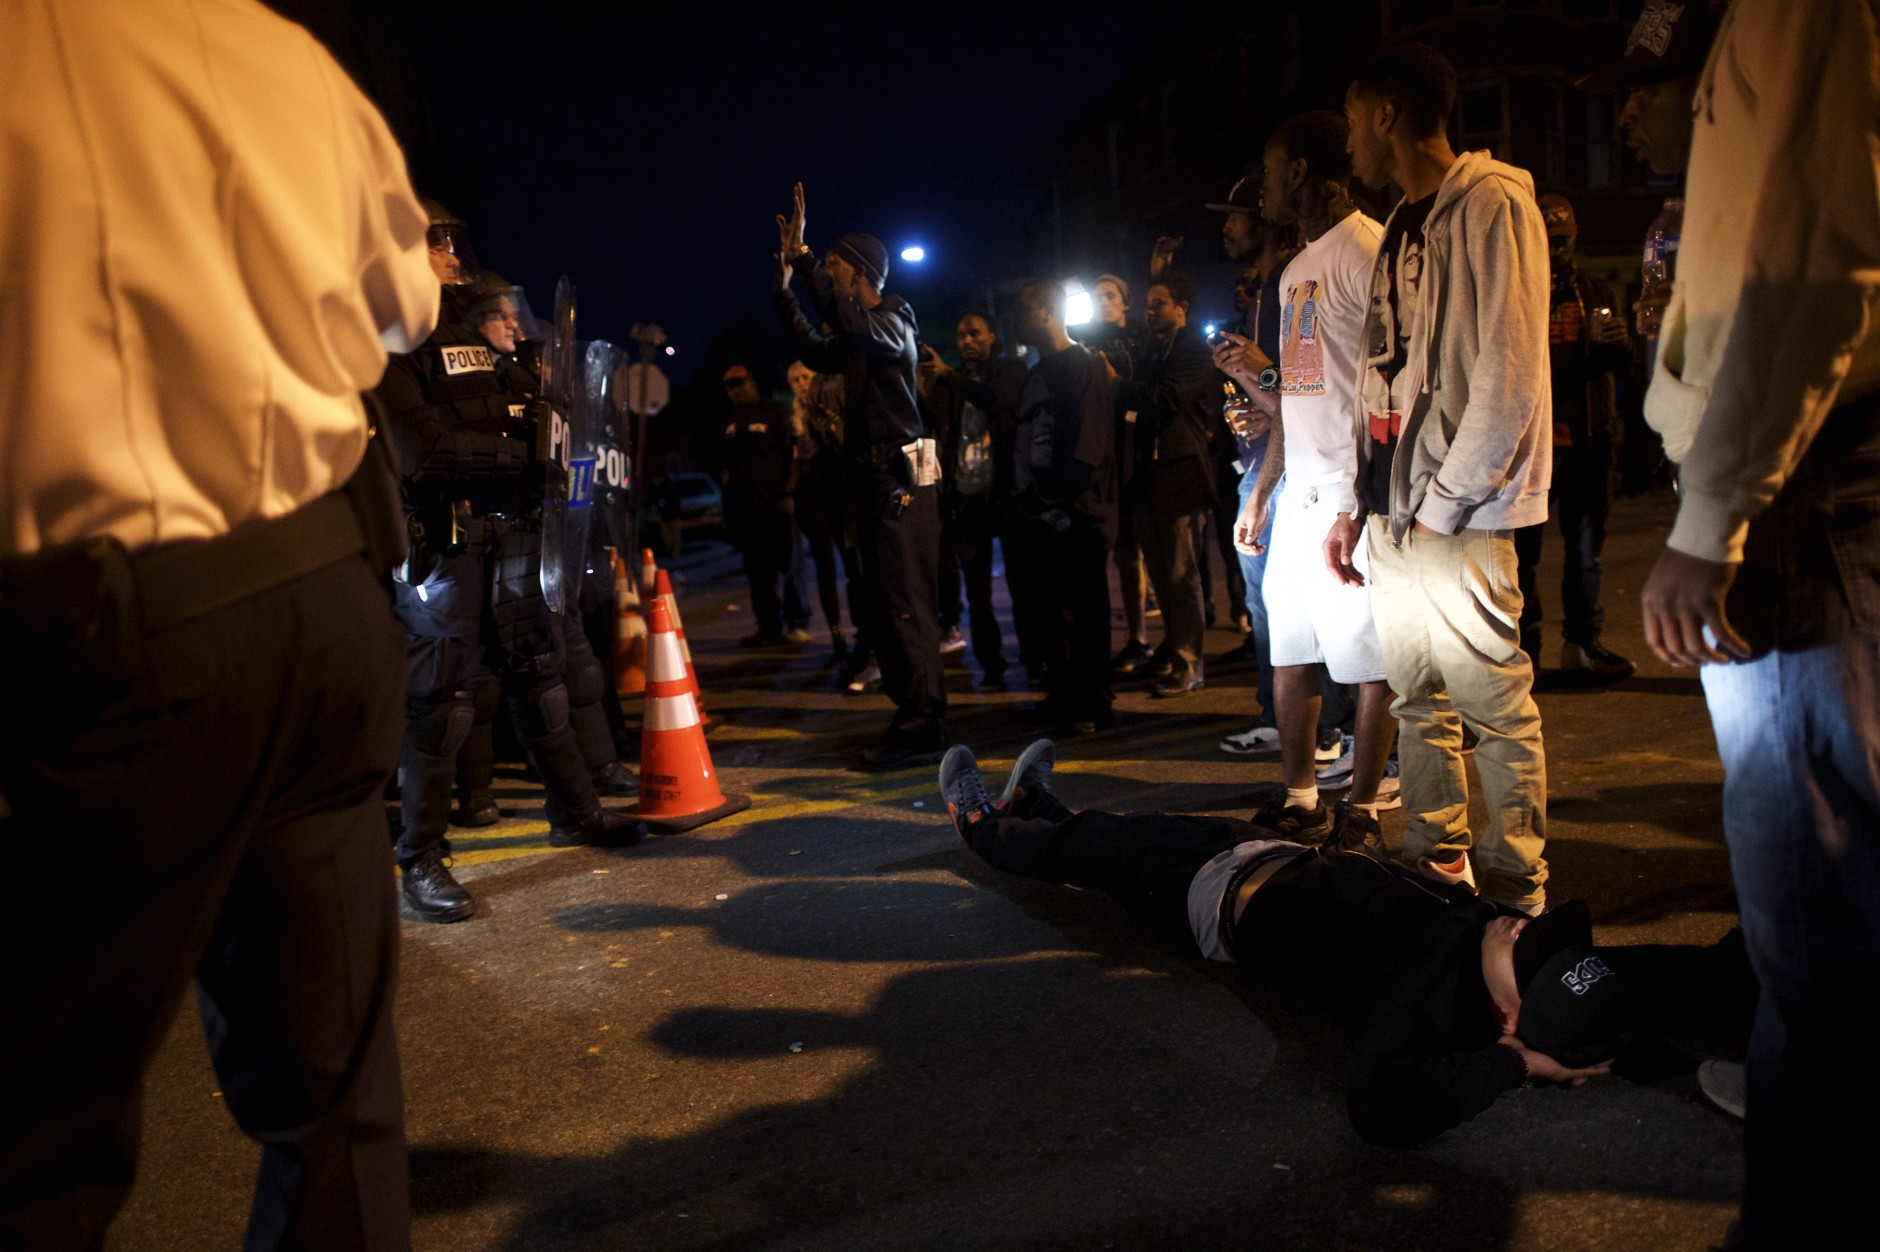 BALTIMORE, MD - APRIL 28:  A protestor lies in front of a police barricade blocking the exit of a vehicle the night after citywide riots over the death of Freddie Gray on April 28, 2015 in Baltimore, Maryland. Freddie Gray, 25, was arrested for possessing a switch blade knife April 12 outside the Gilmor Houses housing project on Baltimore's west side. According to his attorney, Gray died a week later in the hospital from a severe spinal cord injury he received while in police custody. (Photo by Mark Makela/Getty Images)